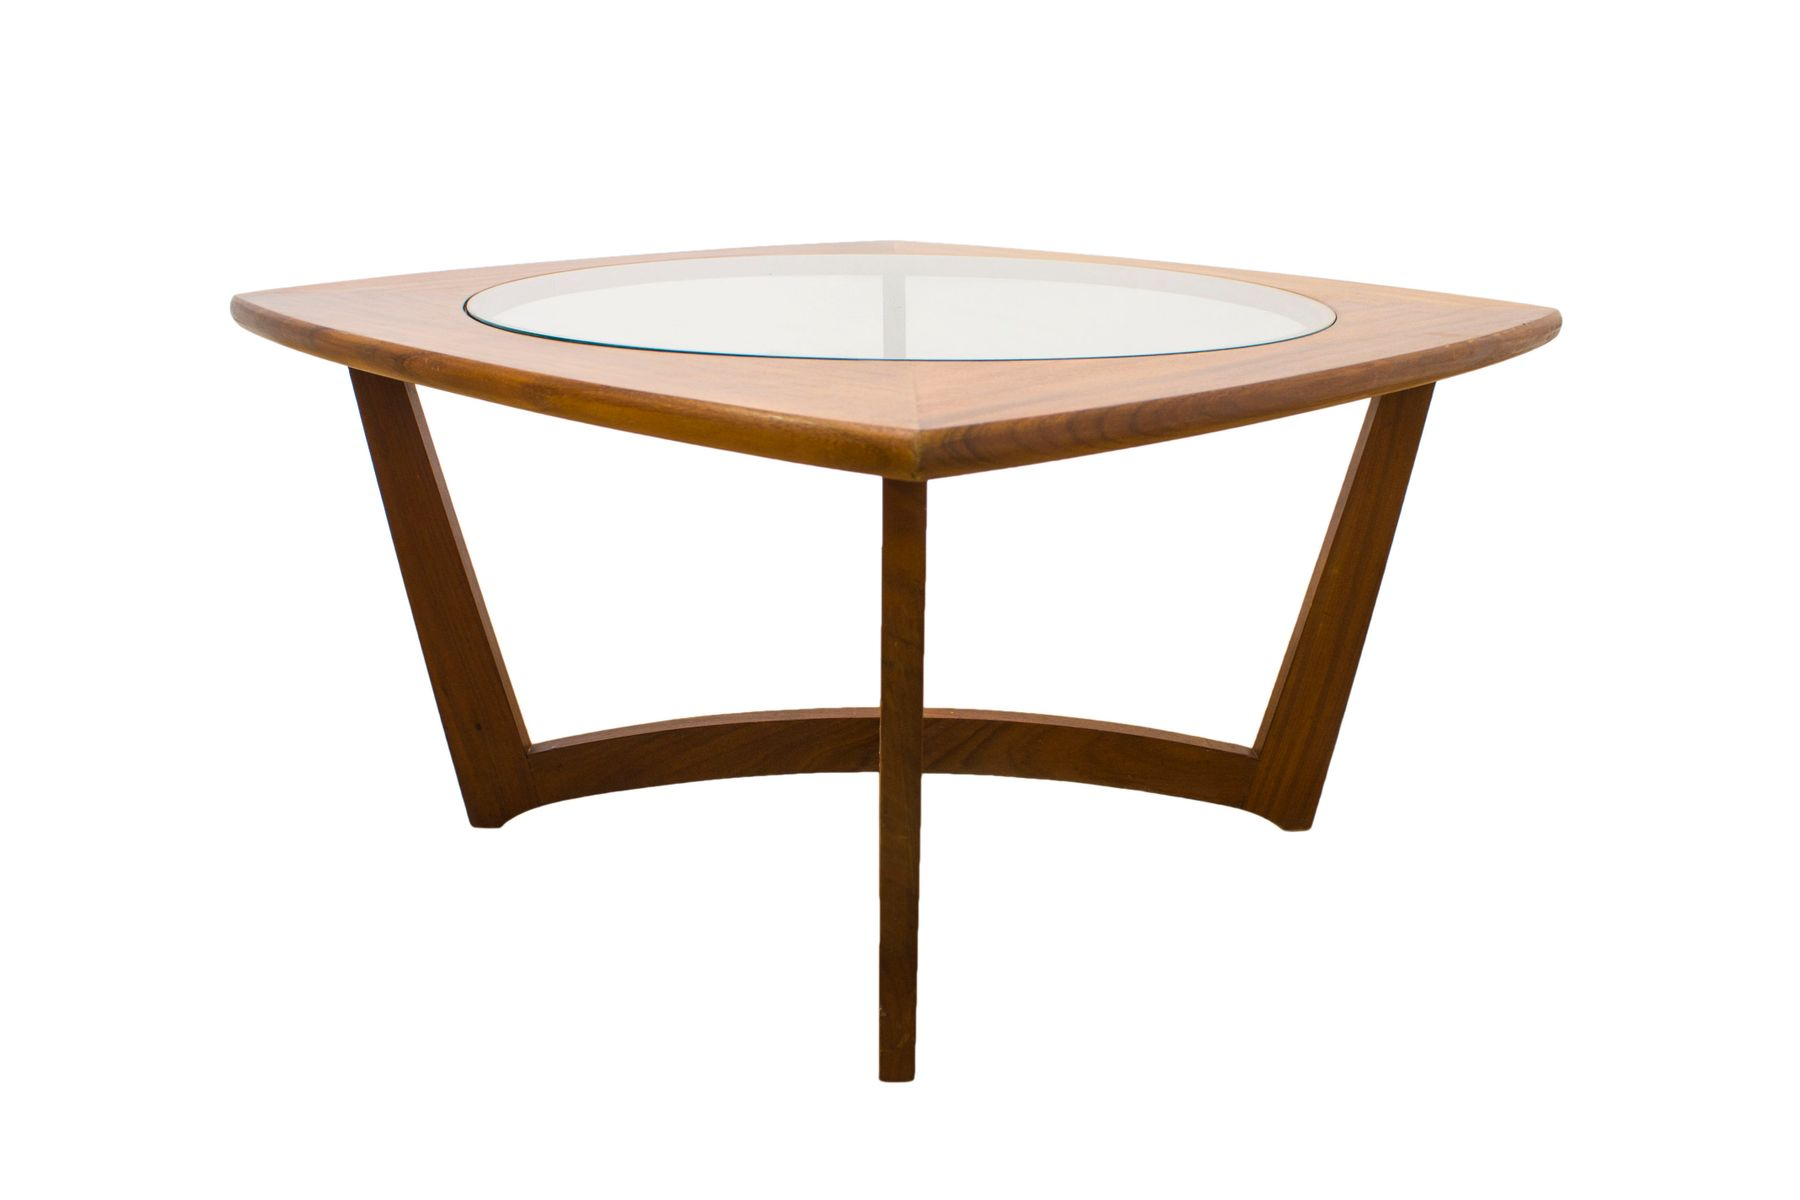 Vintage Danish Teak and Glass Coffee Table for sale at Pamono